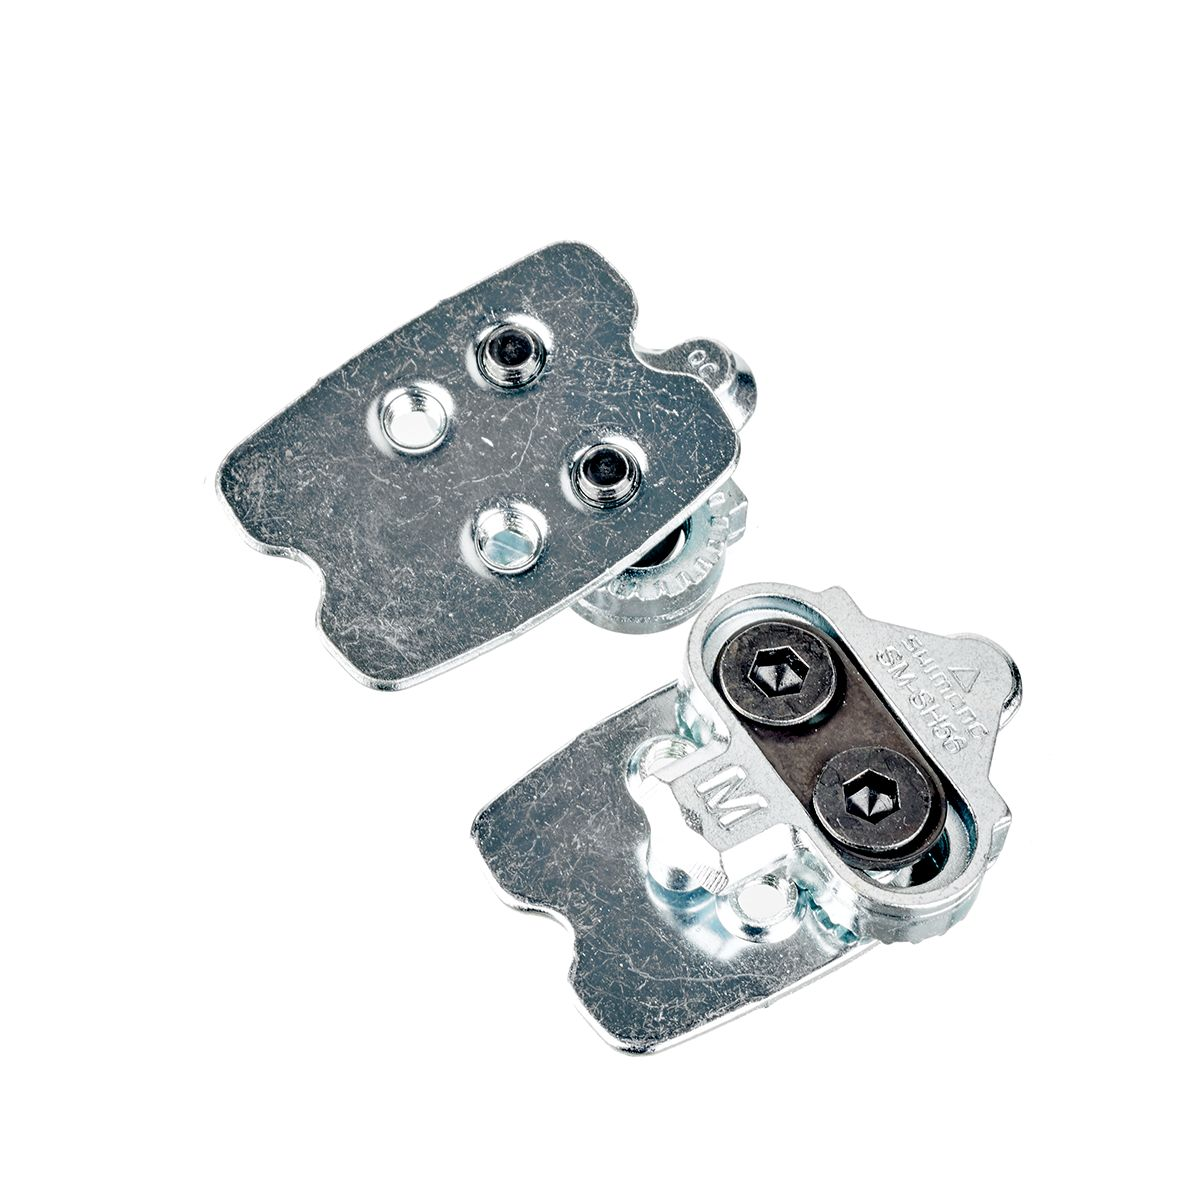 Buy SHIMANO SM-SH56 SPD cleats without